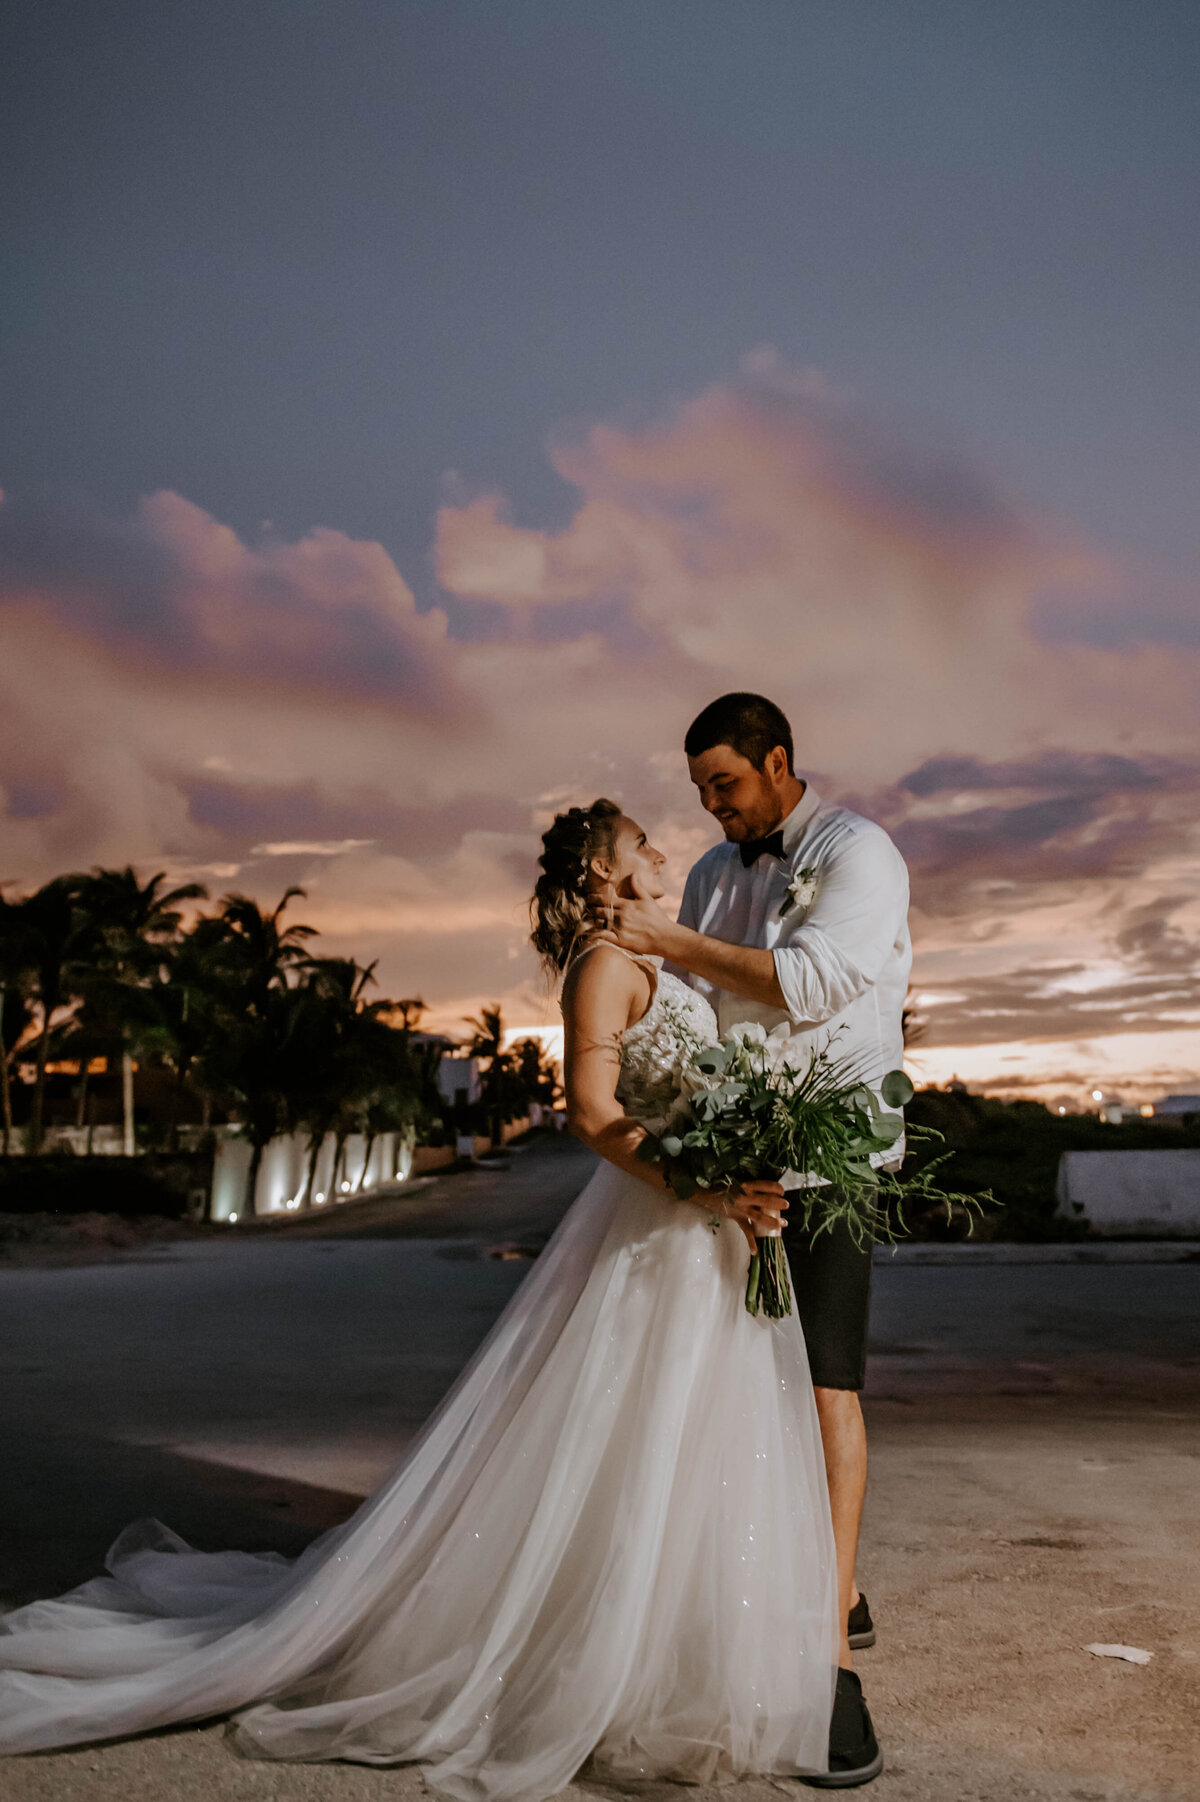 isla-mujeres-wedding-photographer-guthrie-zama-mexico-tulum-cancun-beach-destination-1568